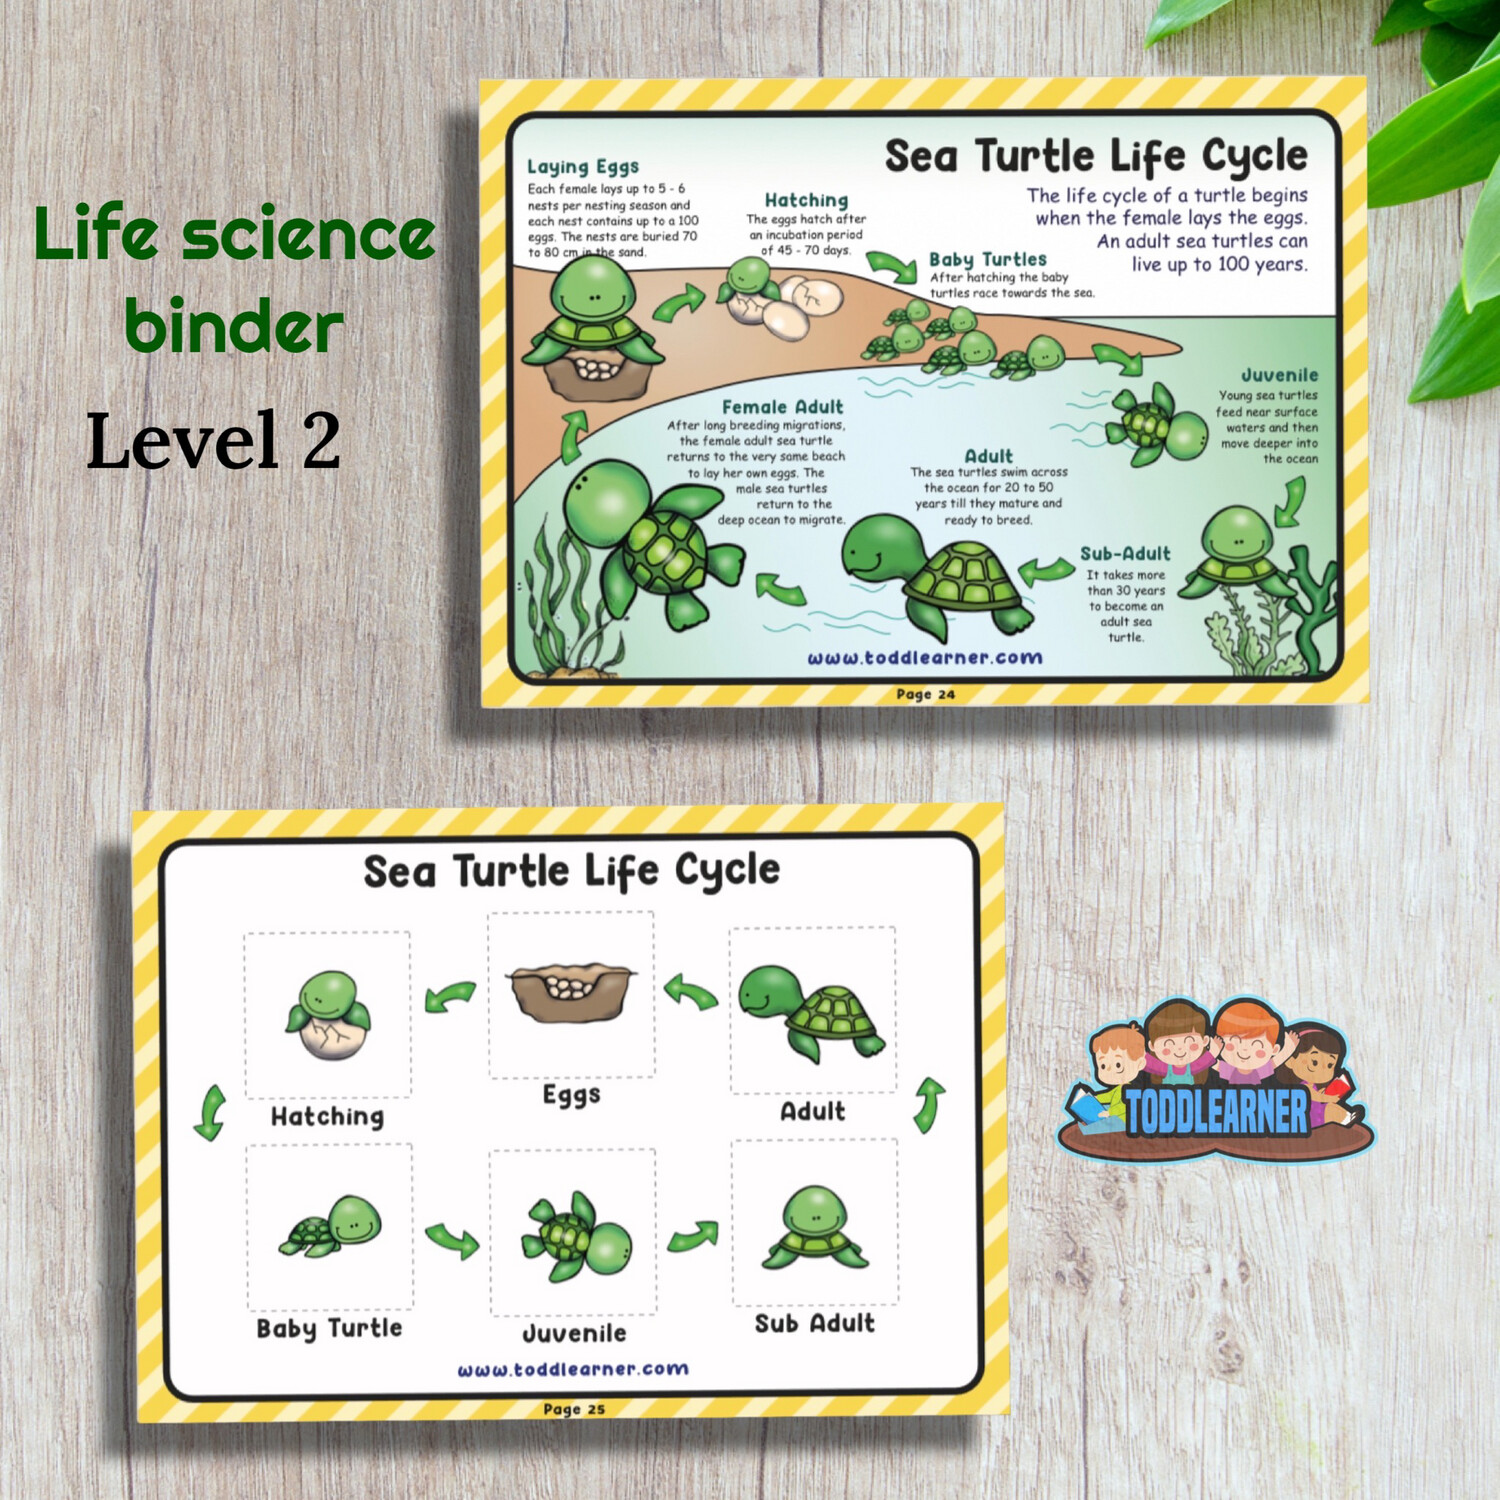 Life Science Learning Binder - Level 2